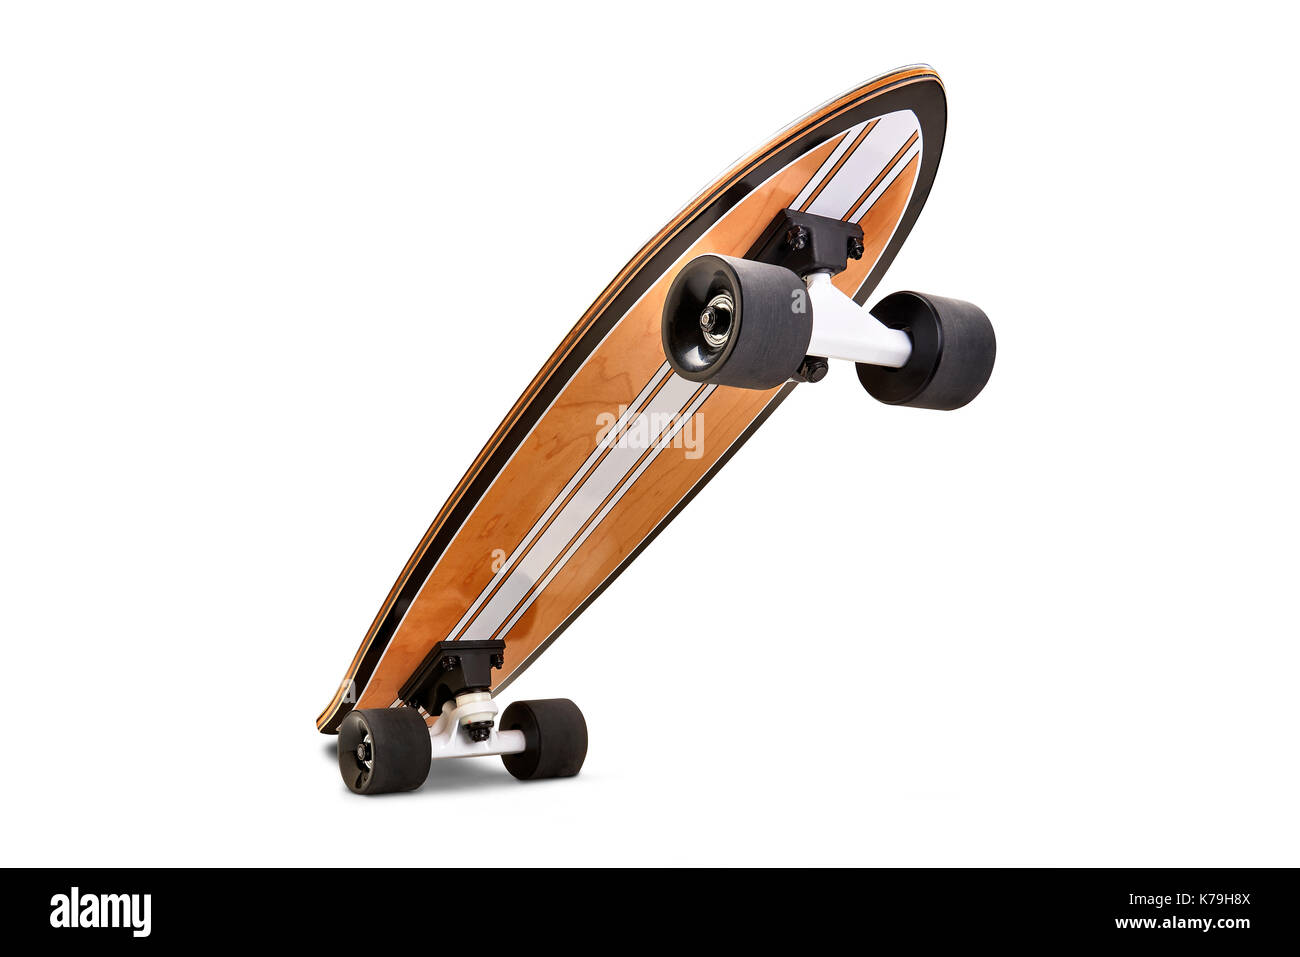 Black and wooden skate board isolated on a white background with clipping path - Stock Image